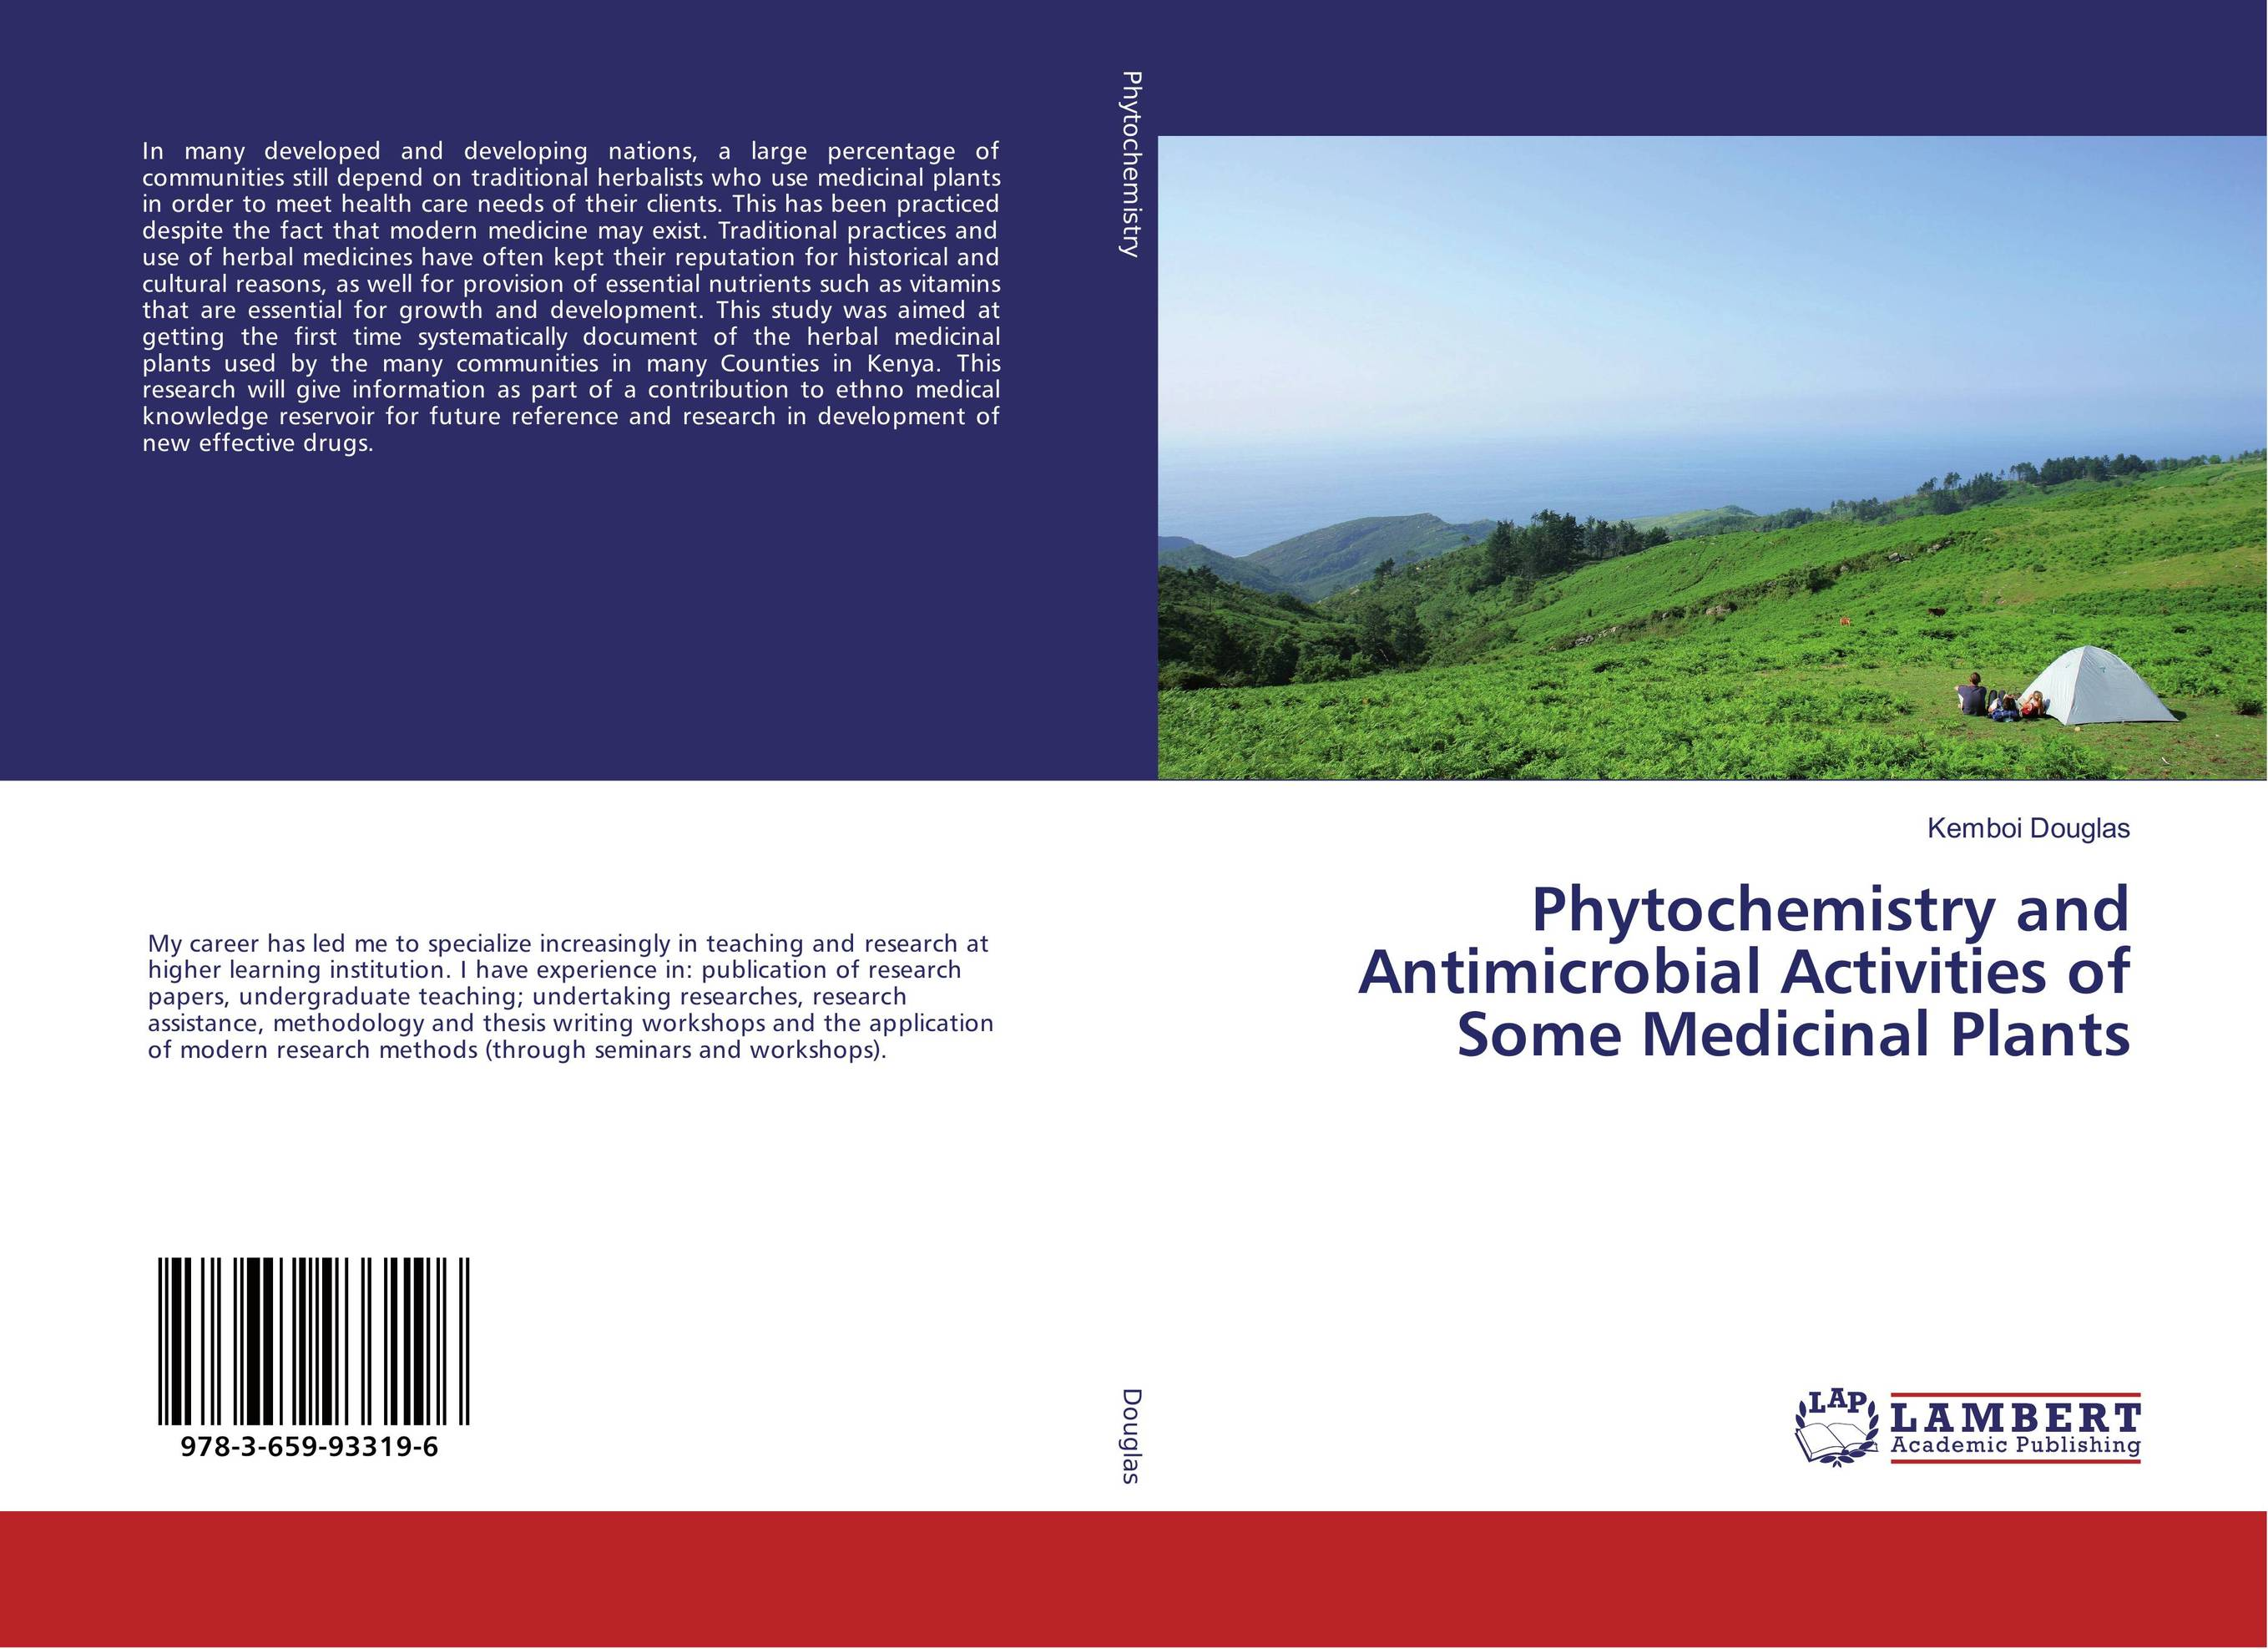 phytochemistry thesis Phytochemistry reviews is an international review journal that publishes peer-reviewed papers in four issues annually the journal examines topical issues, some of which result from meetings organized by the phytochemical society of europe (pse) and by the phytochemical society of north america (psna.